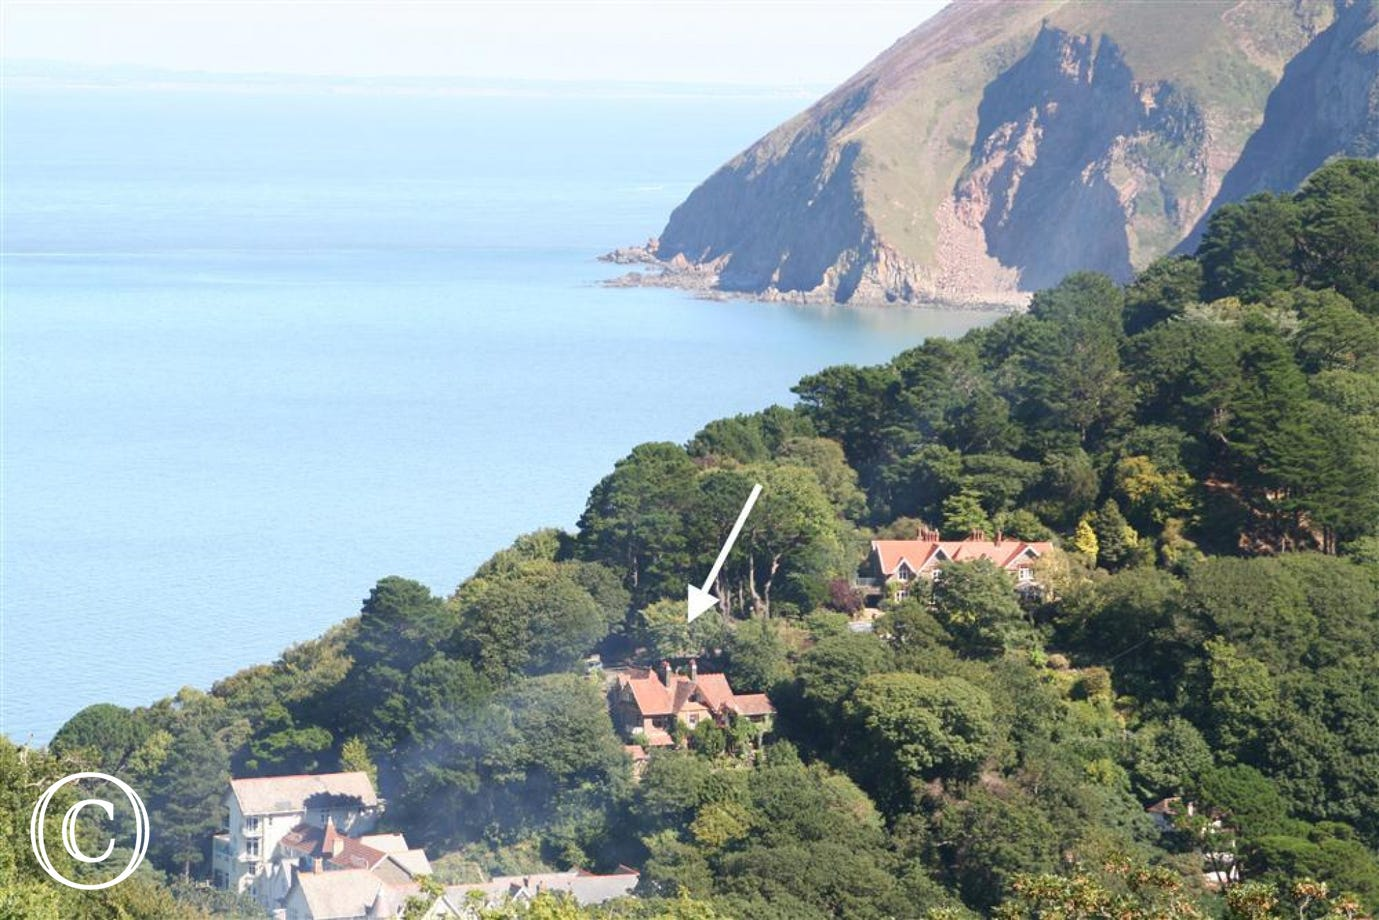 The apartment is located on the top floor of an imposing country house nestling in the wooded hillsides high above the picturesque Exmoor village of Lynmouth